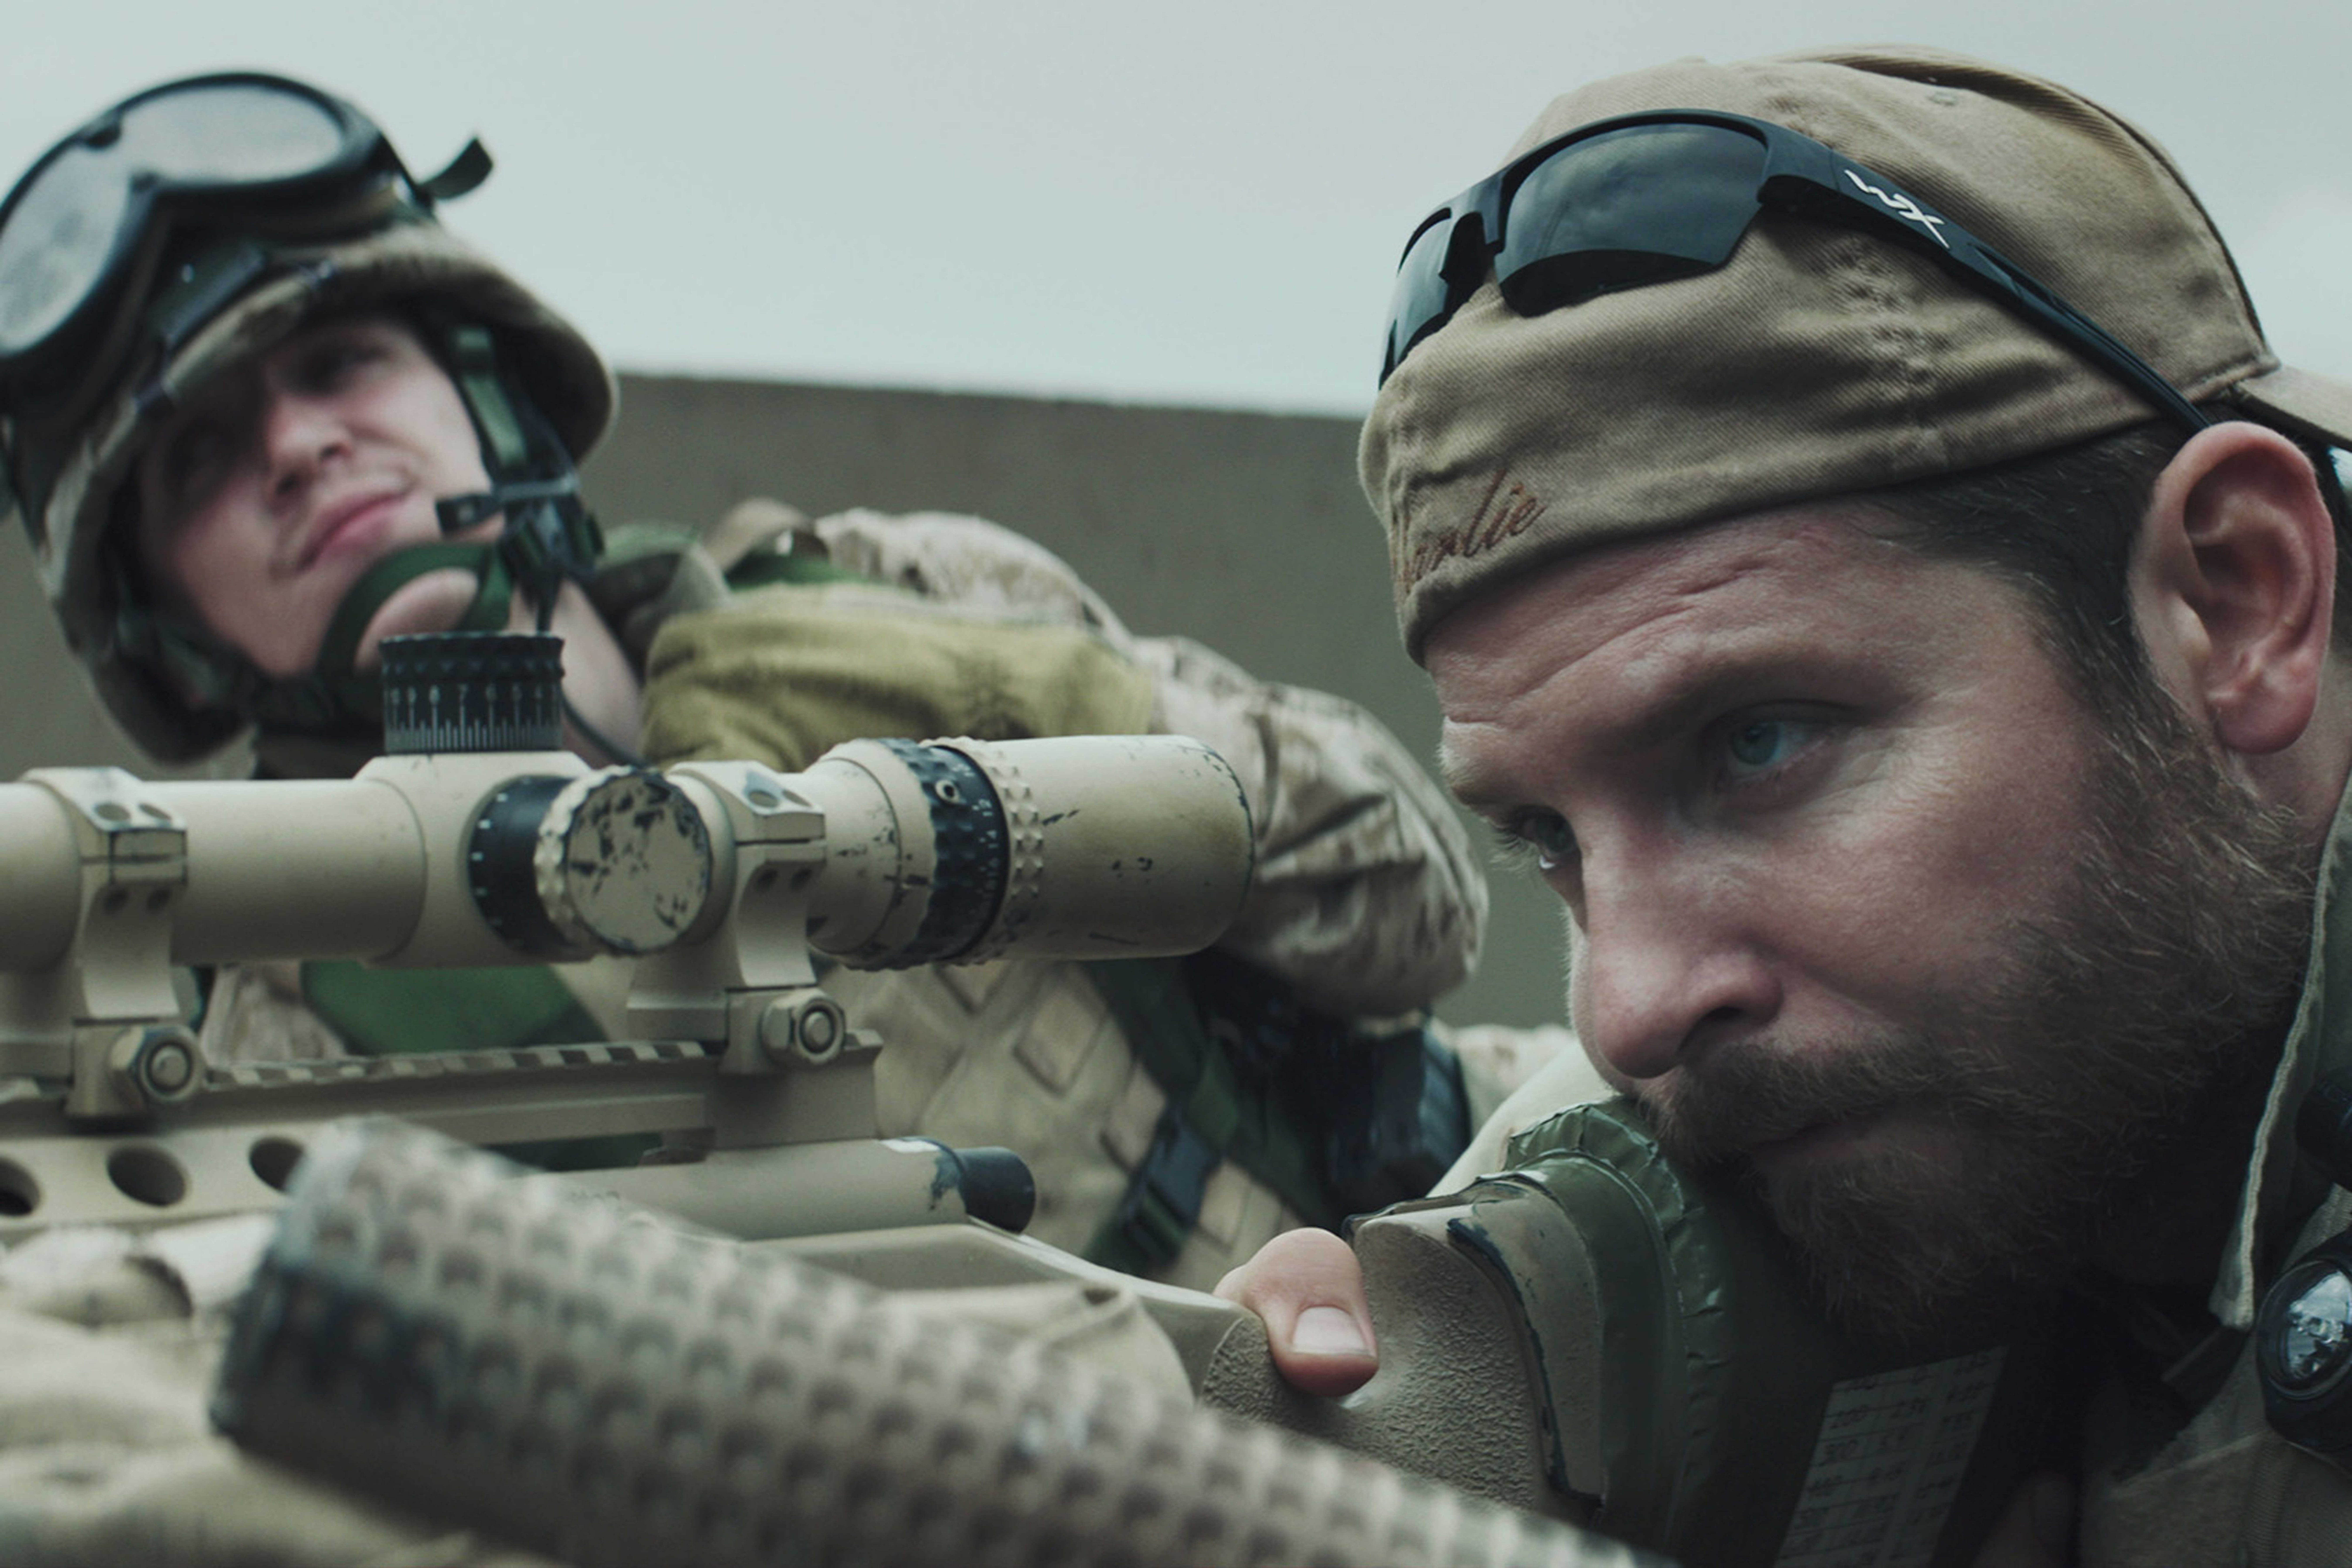 American Sniper shocks and awes audiences